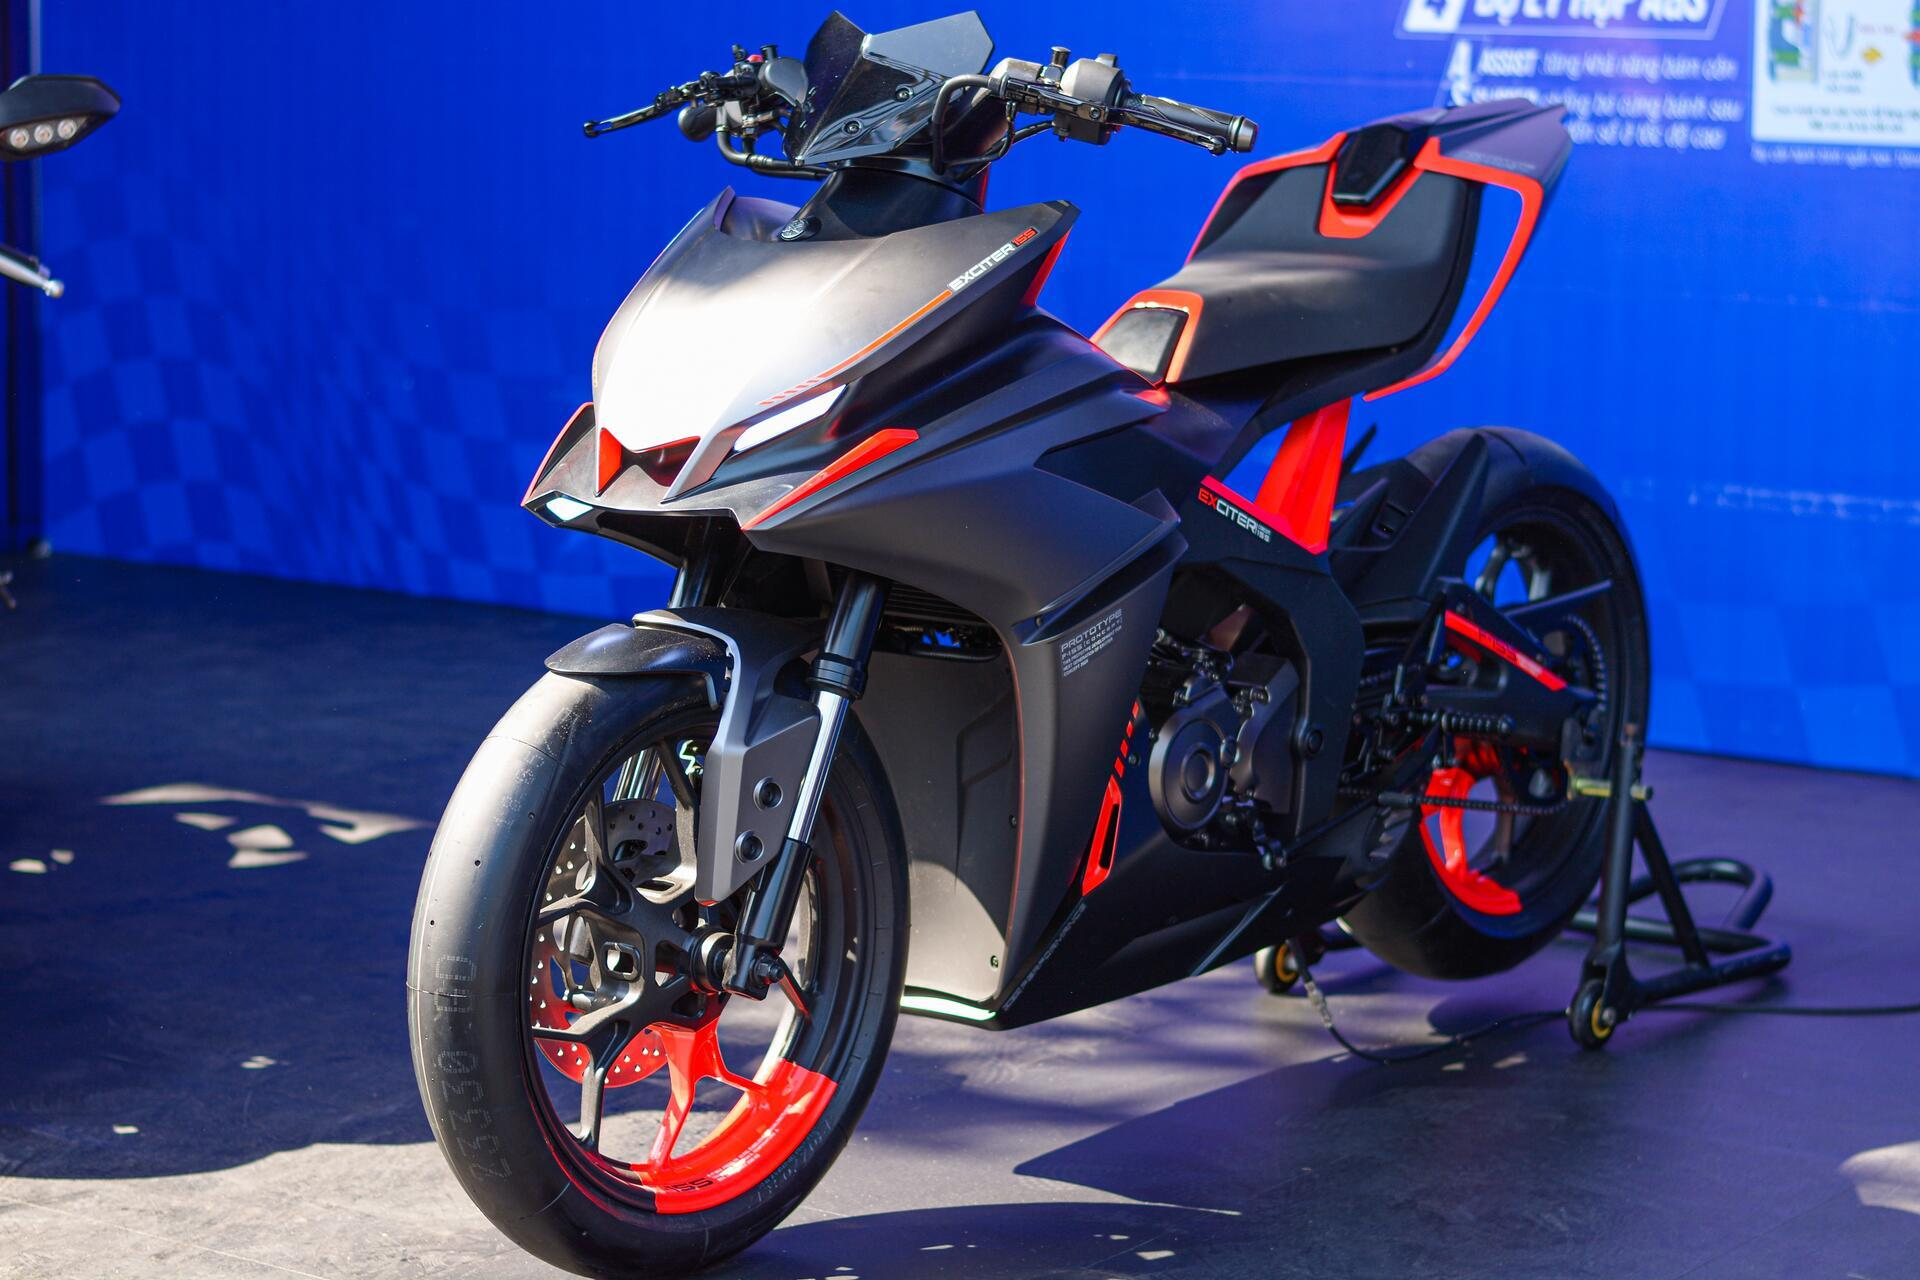 chi-tiet-yamaha-f-155-ban-concept-cua-exciter-the-he-moi